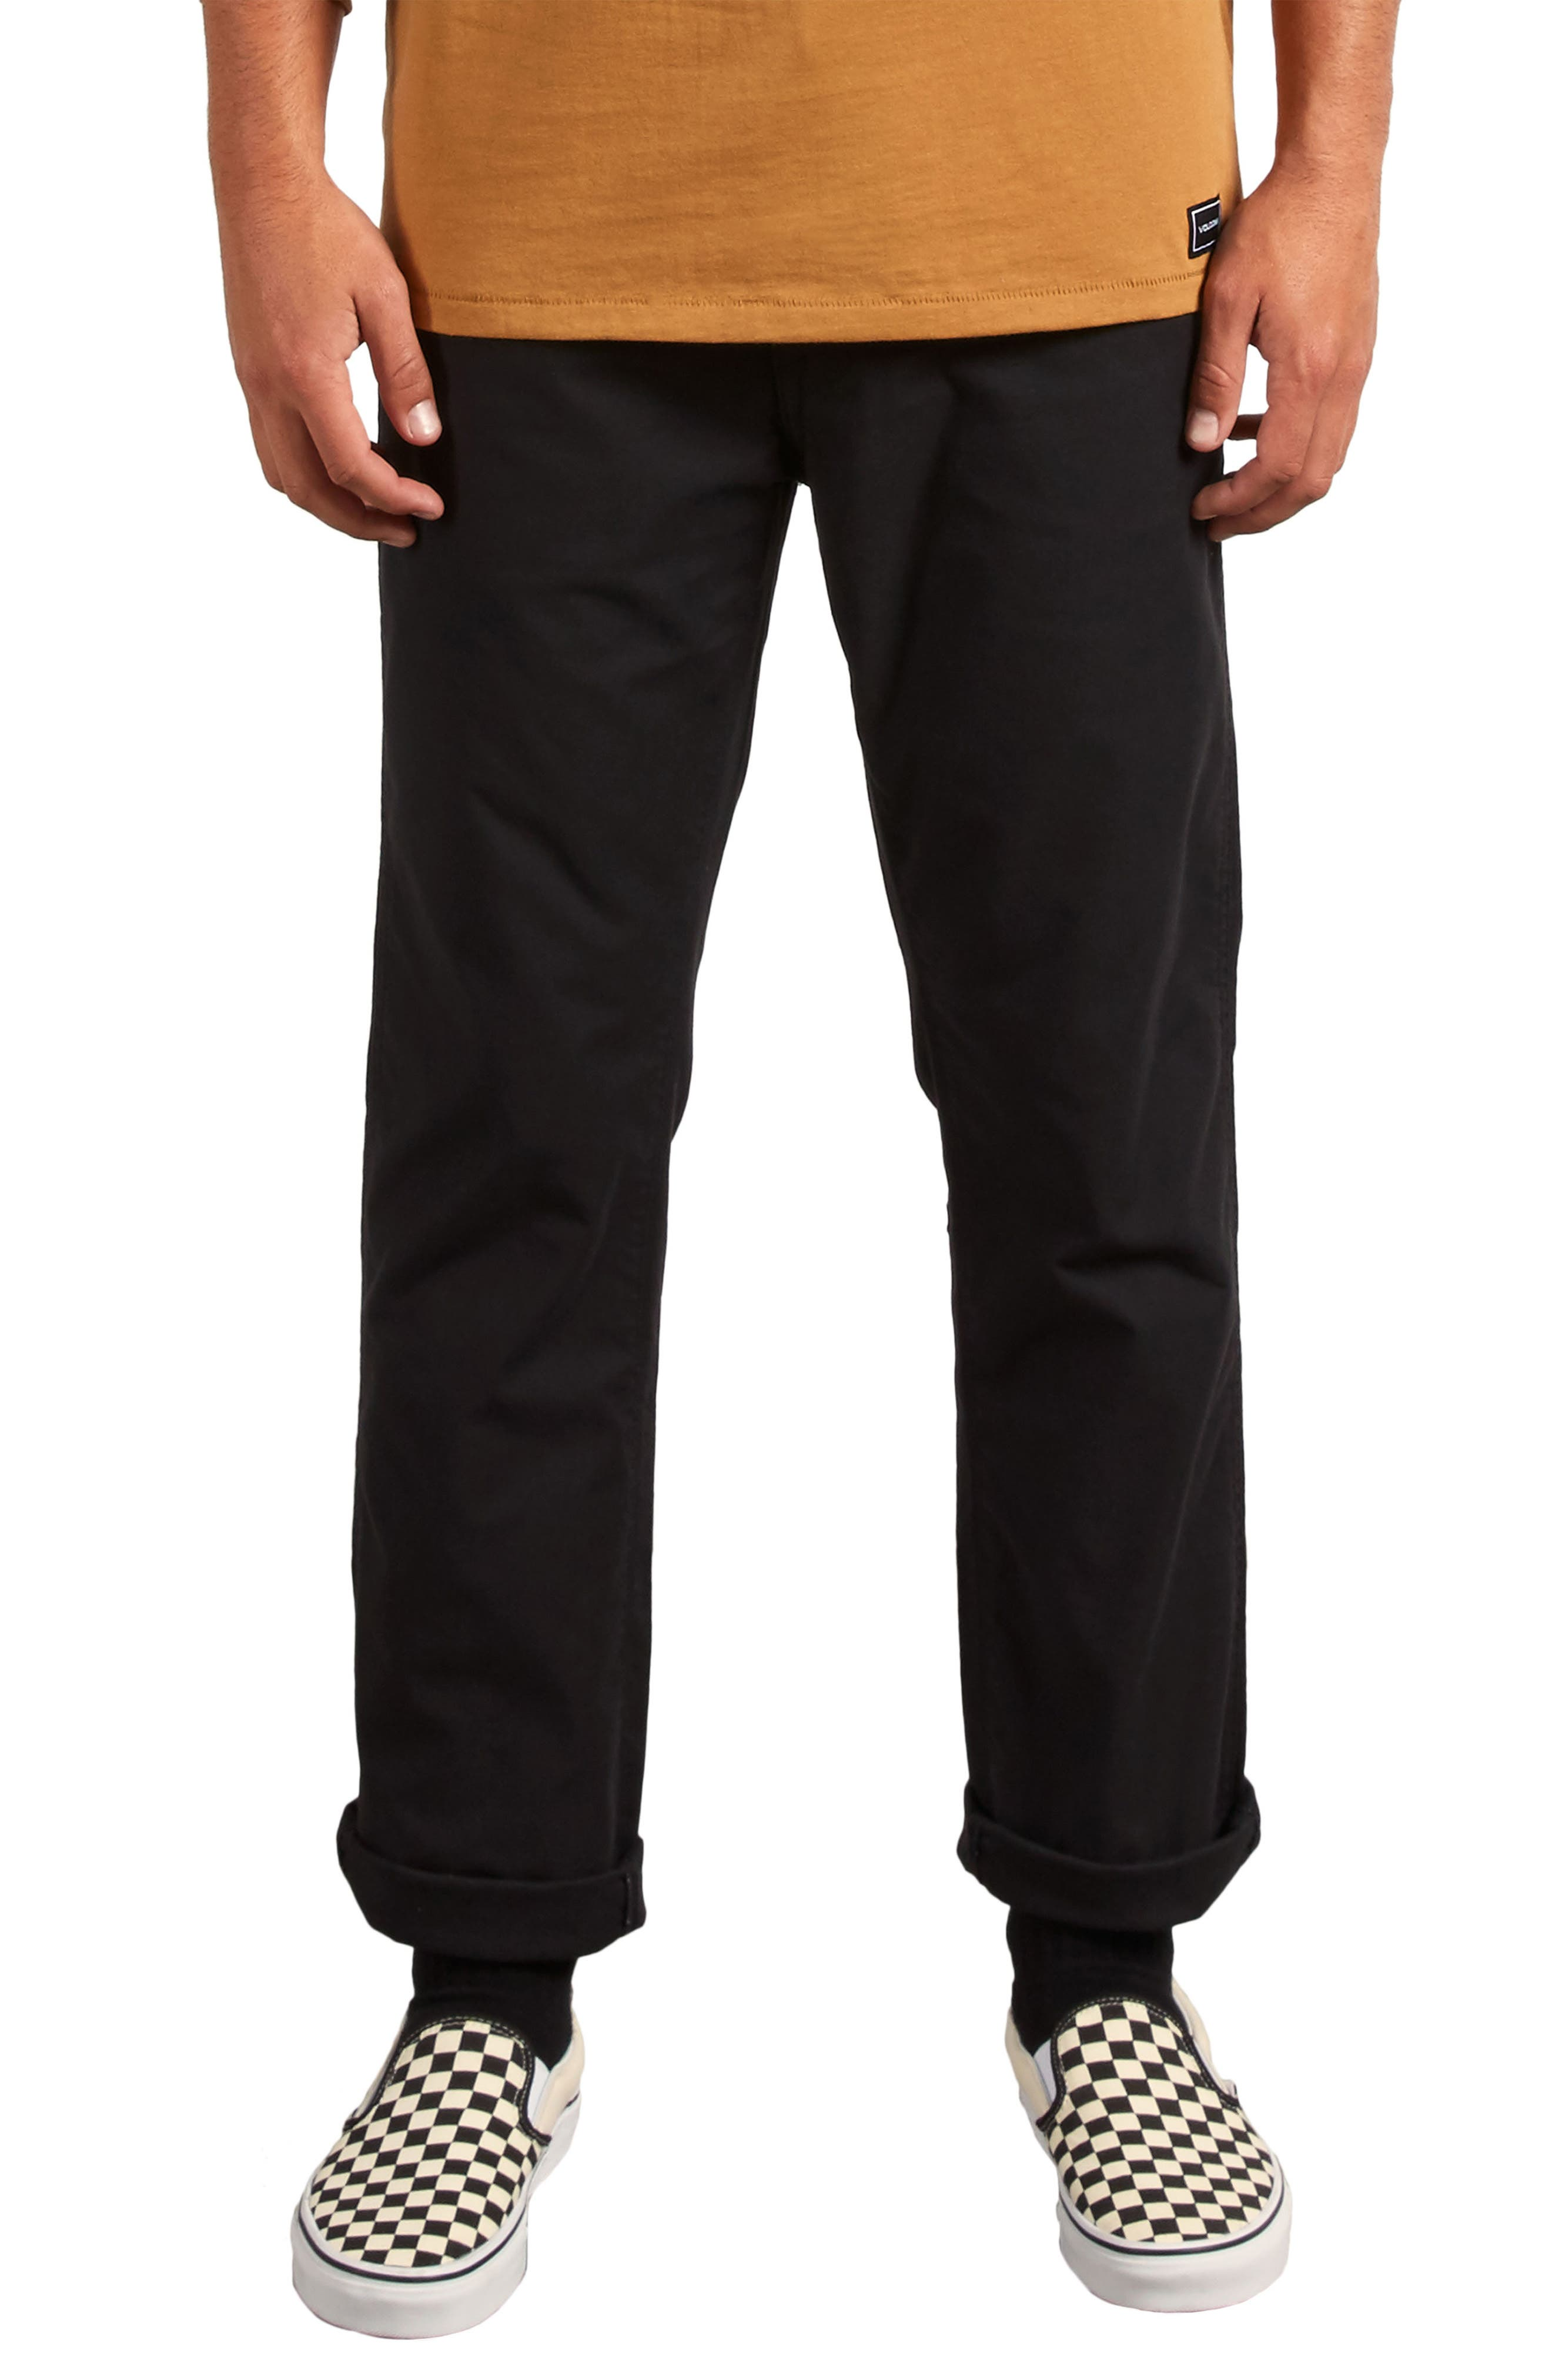 Gritter Modern Fit Straight Leg Chino Pants,                         Main,                         color, BLACK